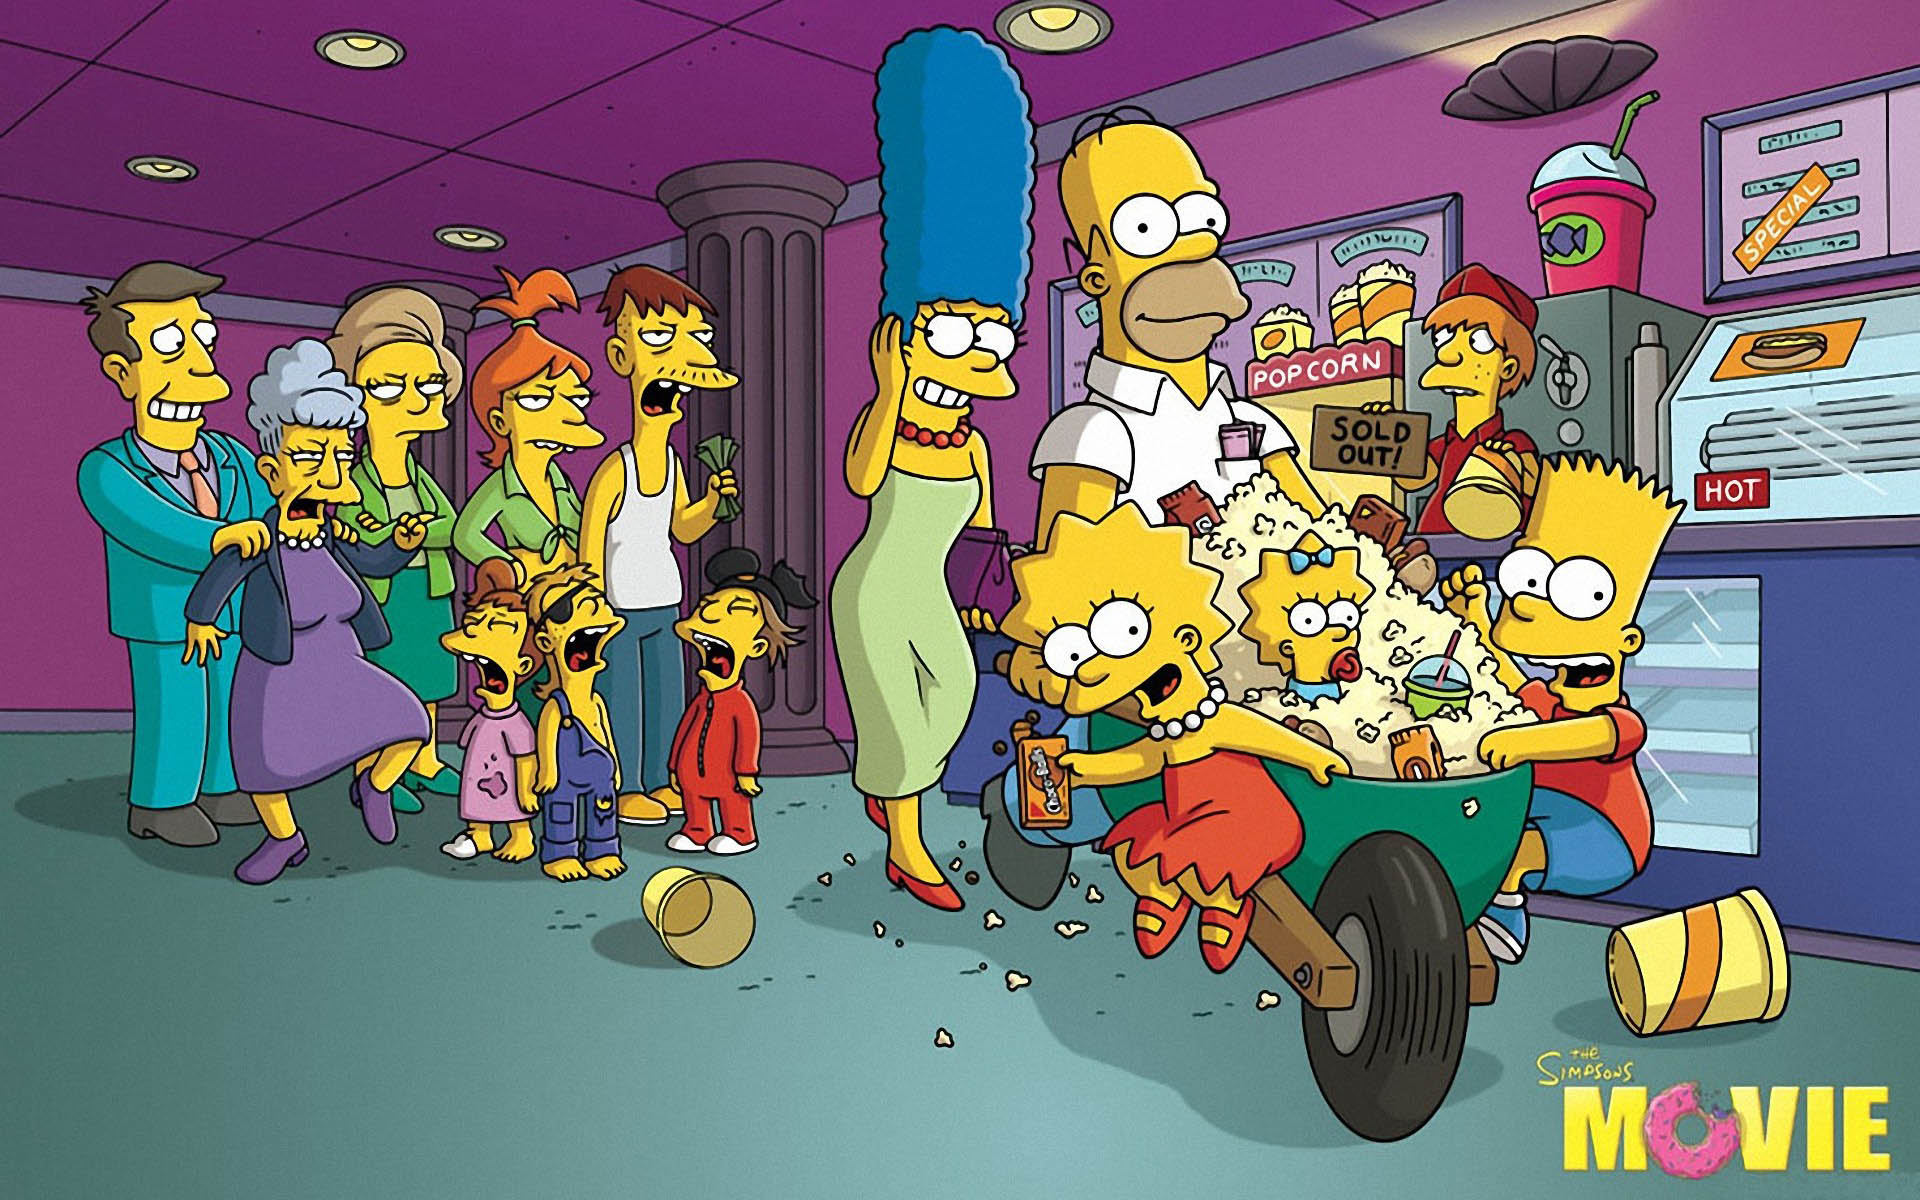 No New Simpsons Movie for At Least Ten Years? But Iu0026#39;m bored now. | Den of Geek